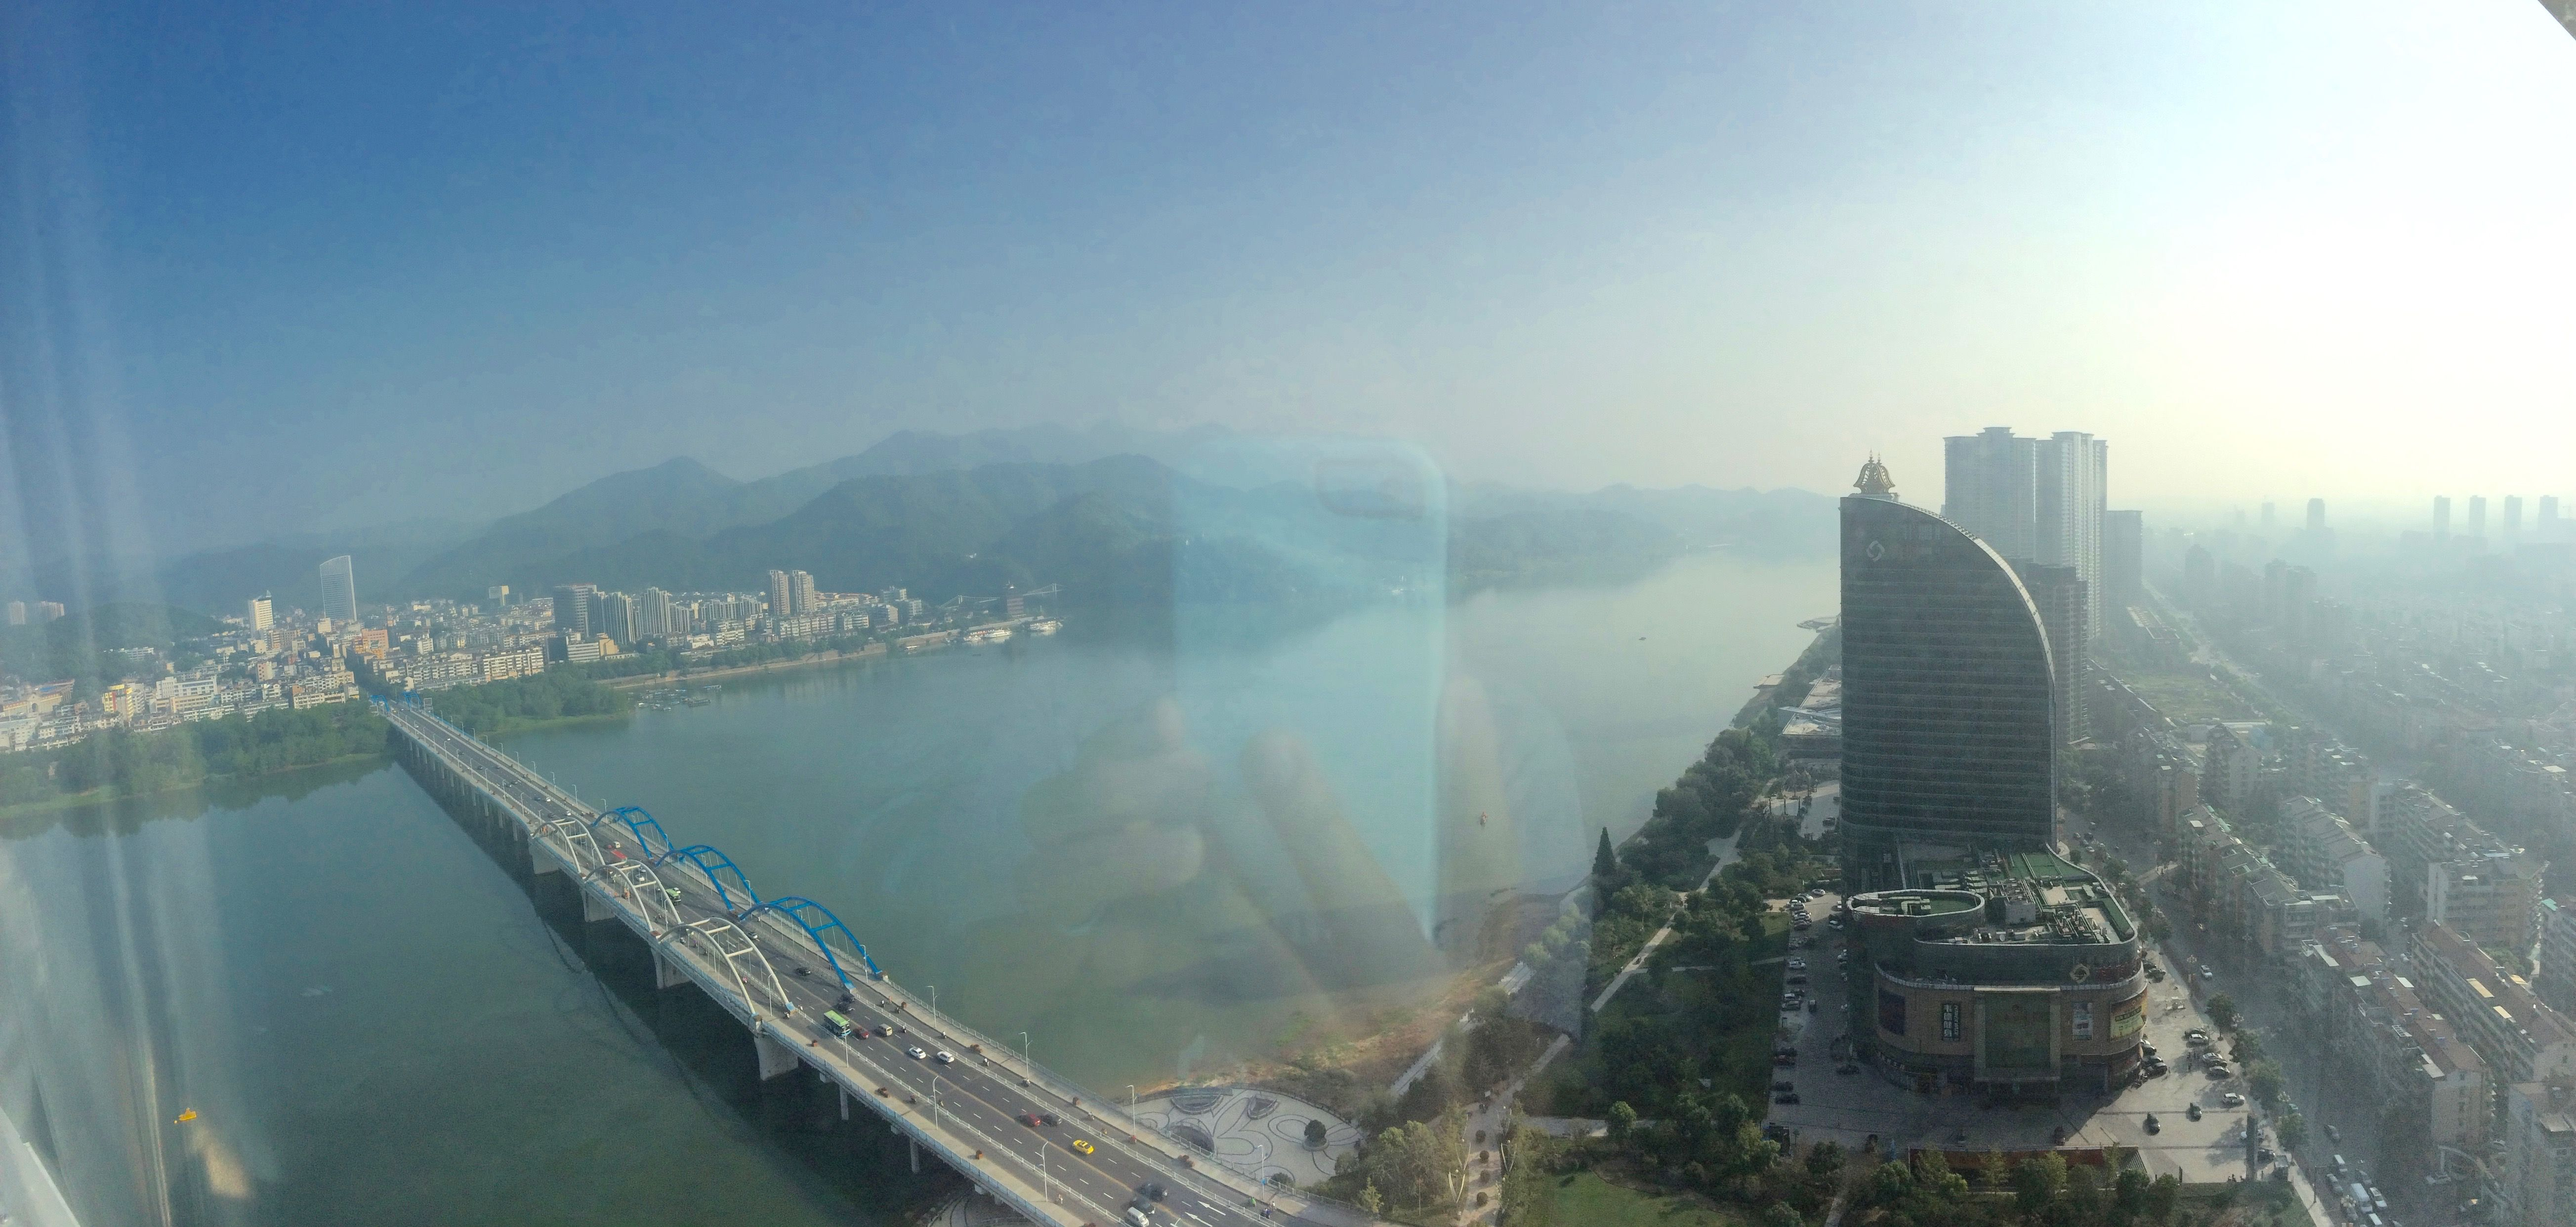 Pano-view from fancy hotel room window in Hangzhou, China ...